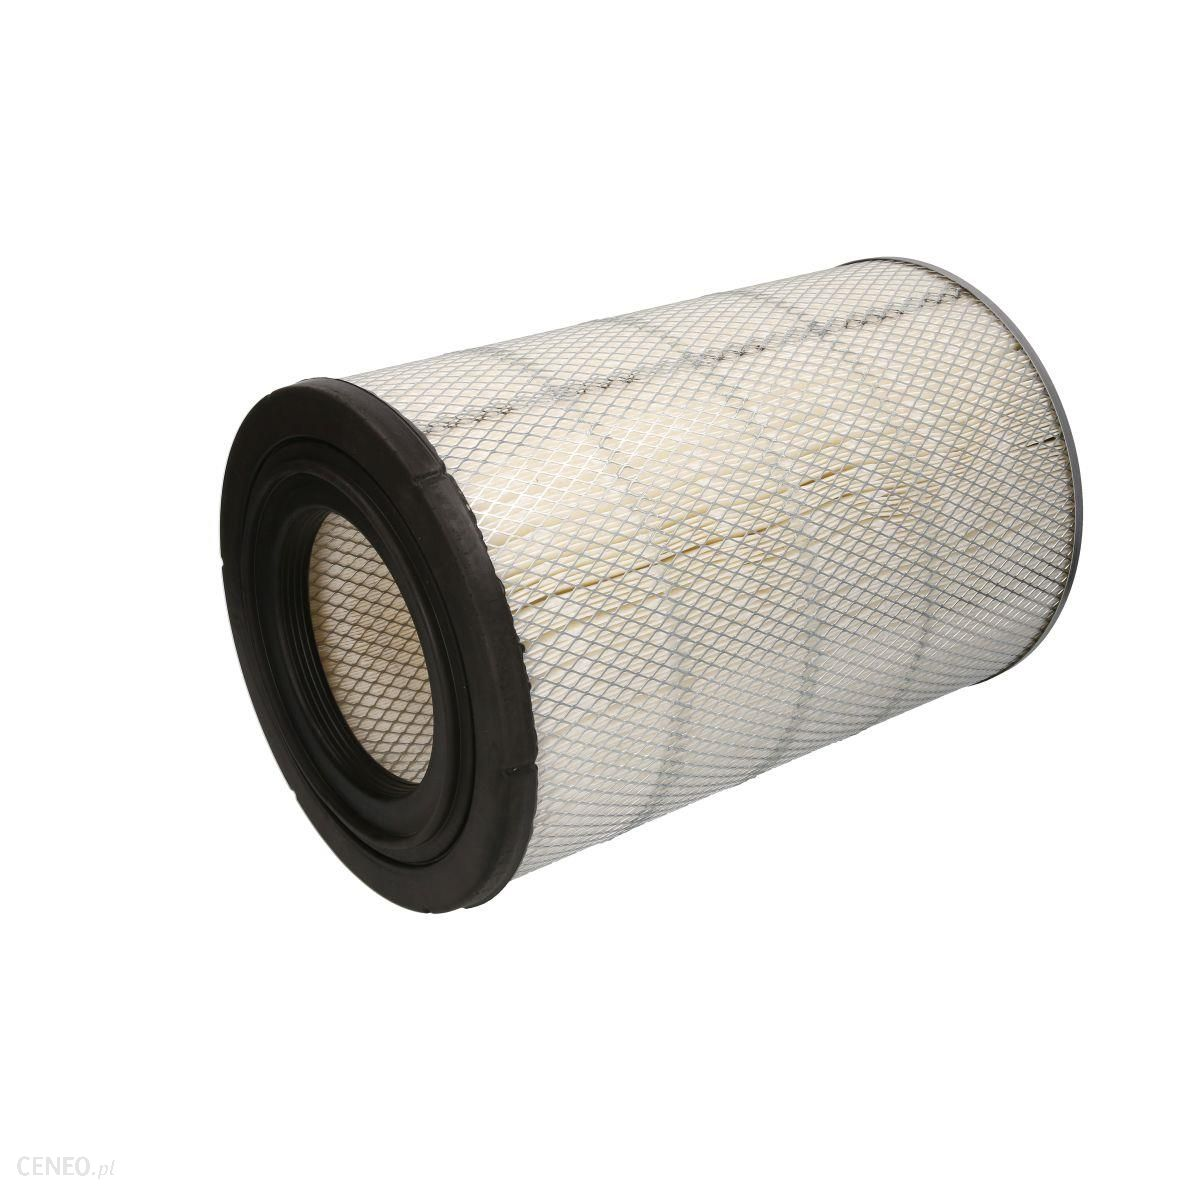 Wix Filters 46607